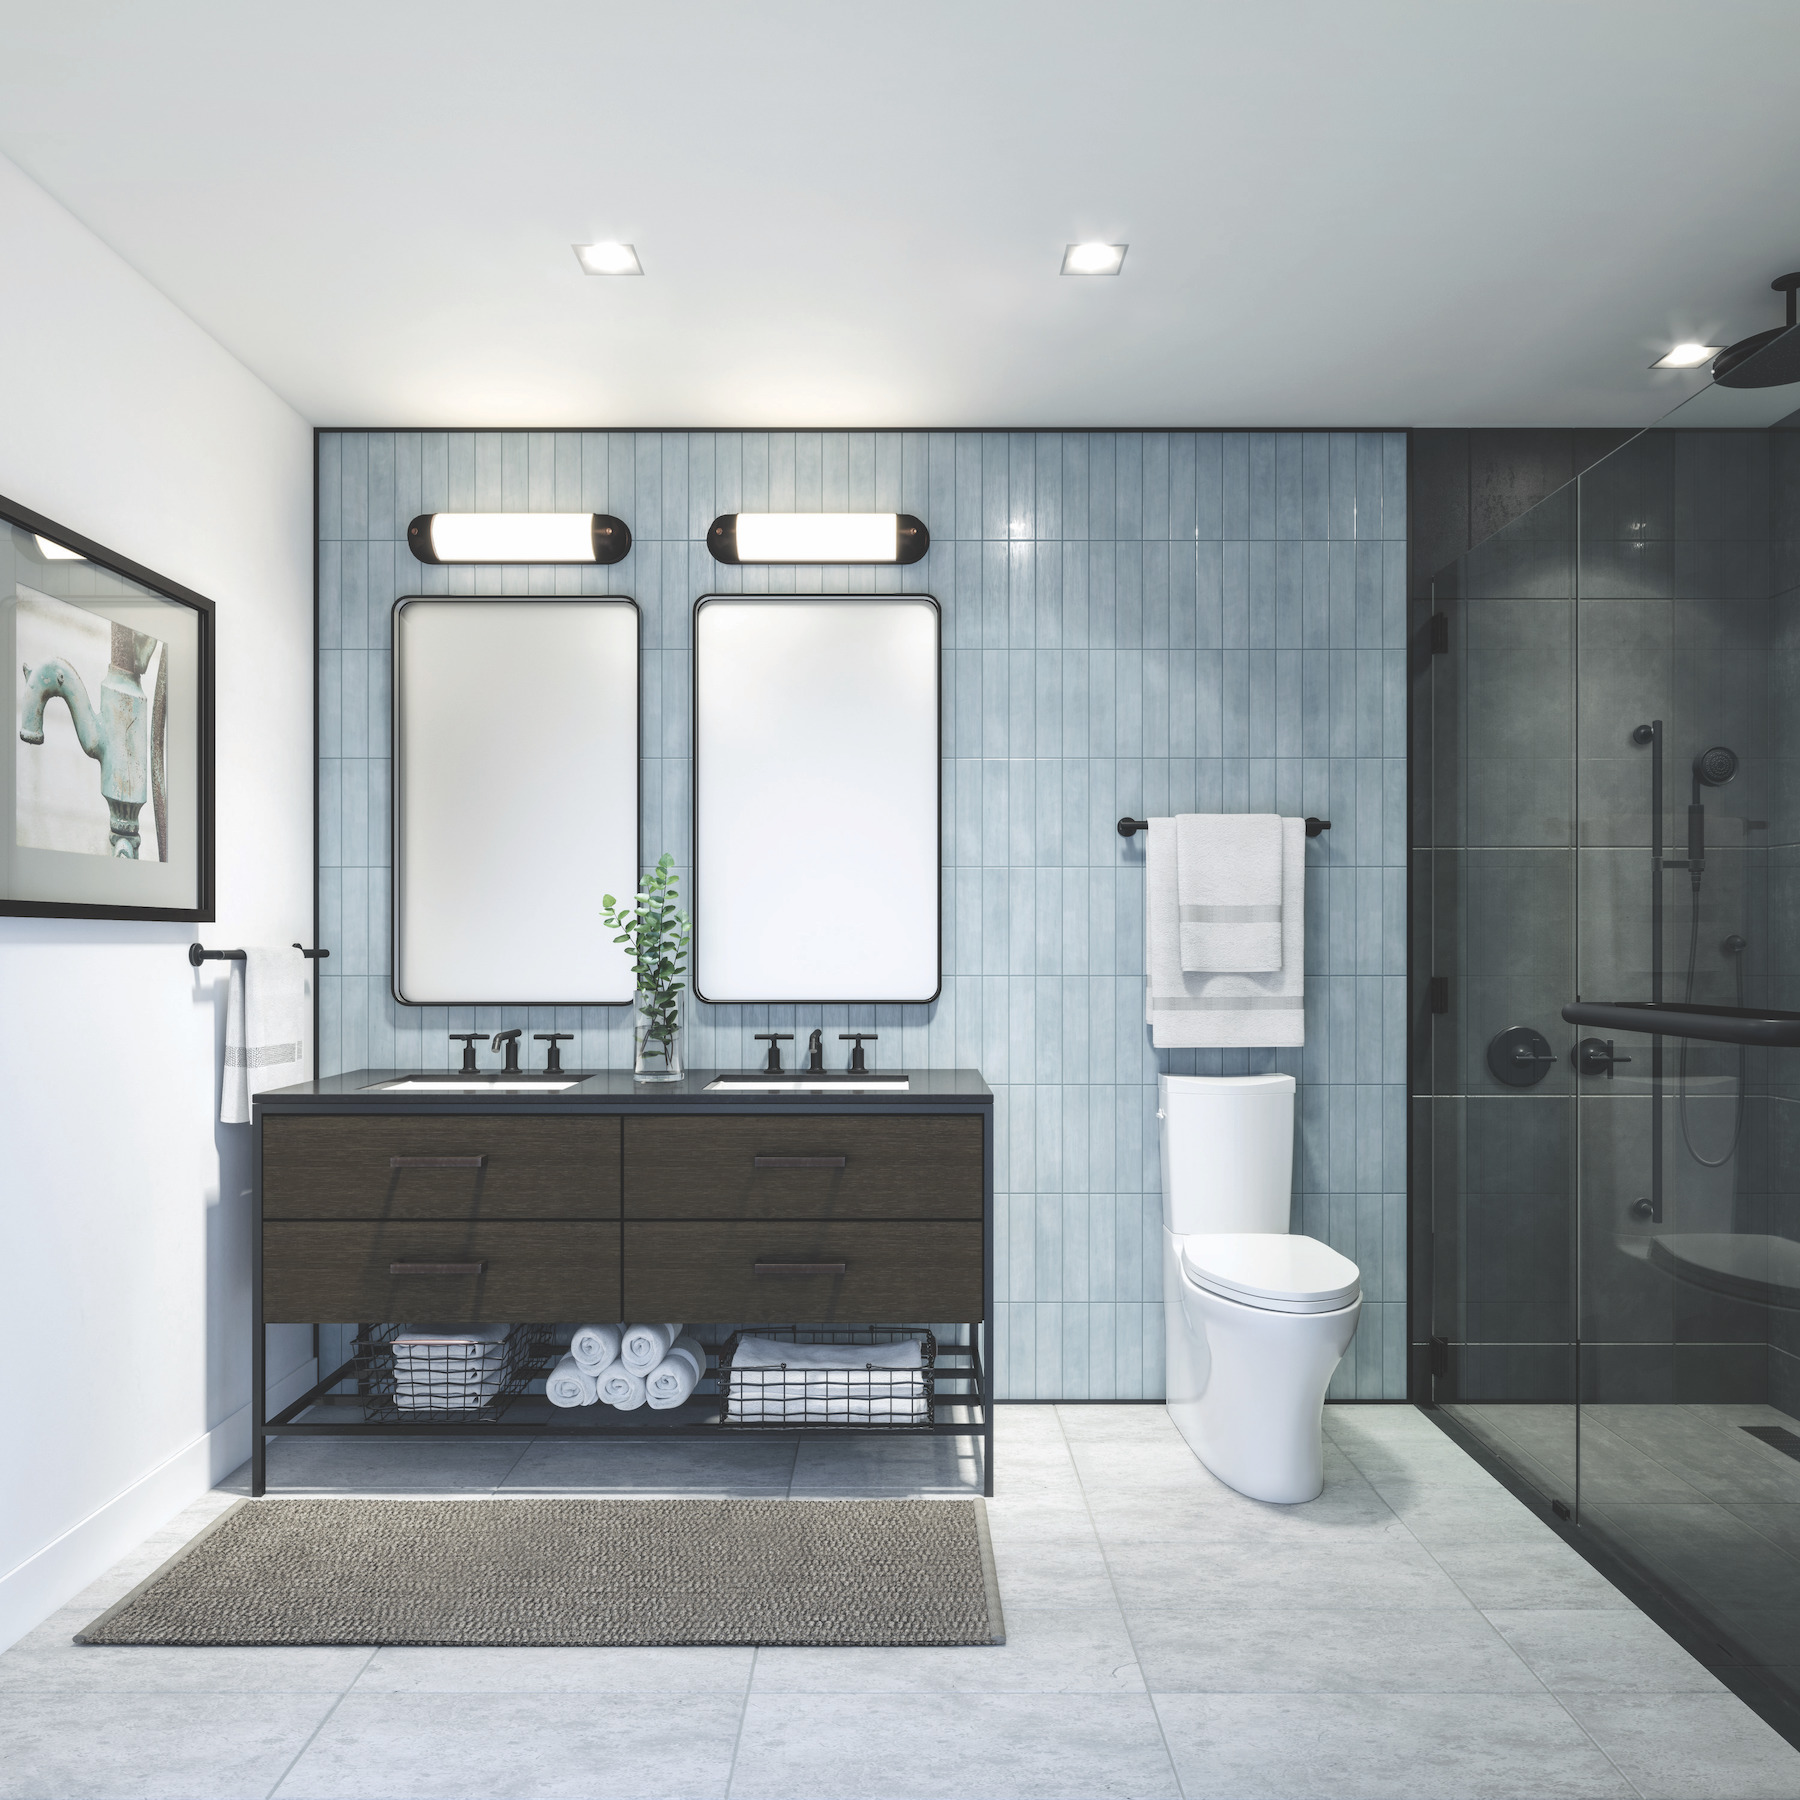 bathroom with floor and wall tiling, dual vanity display, and innovative toilet